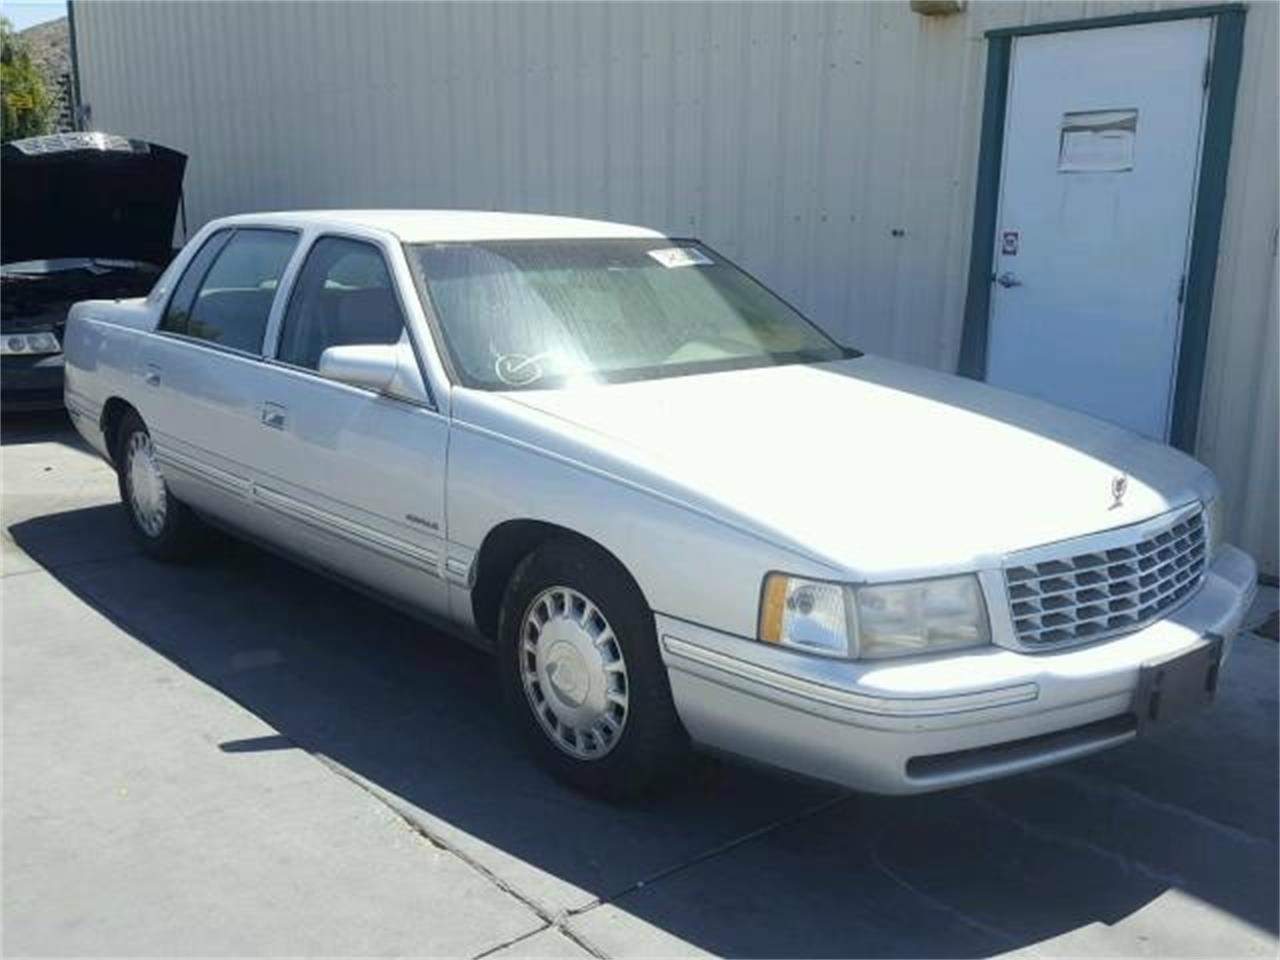 1999 Cadillac DeVille for sale in Pahrump, NV